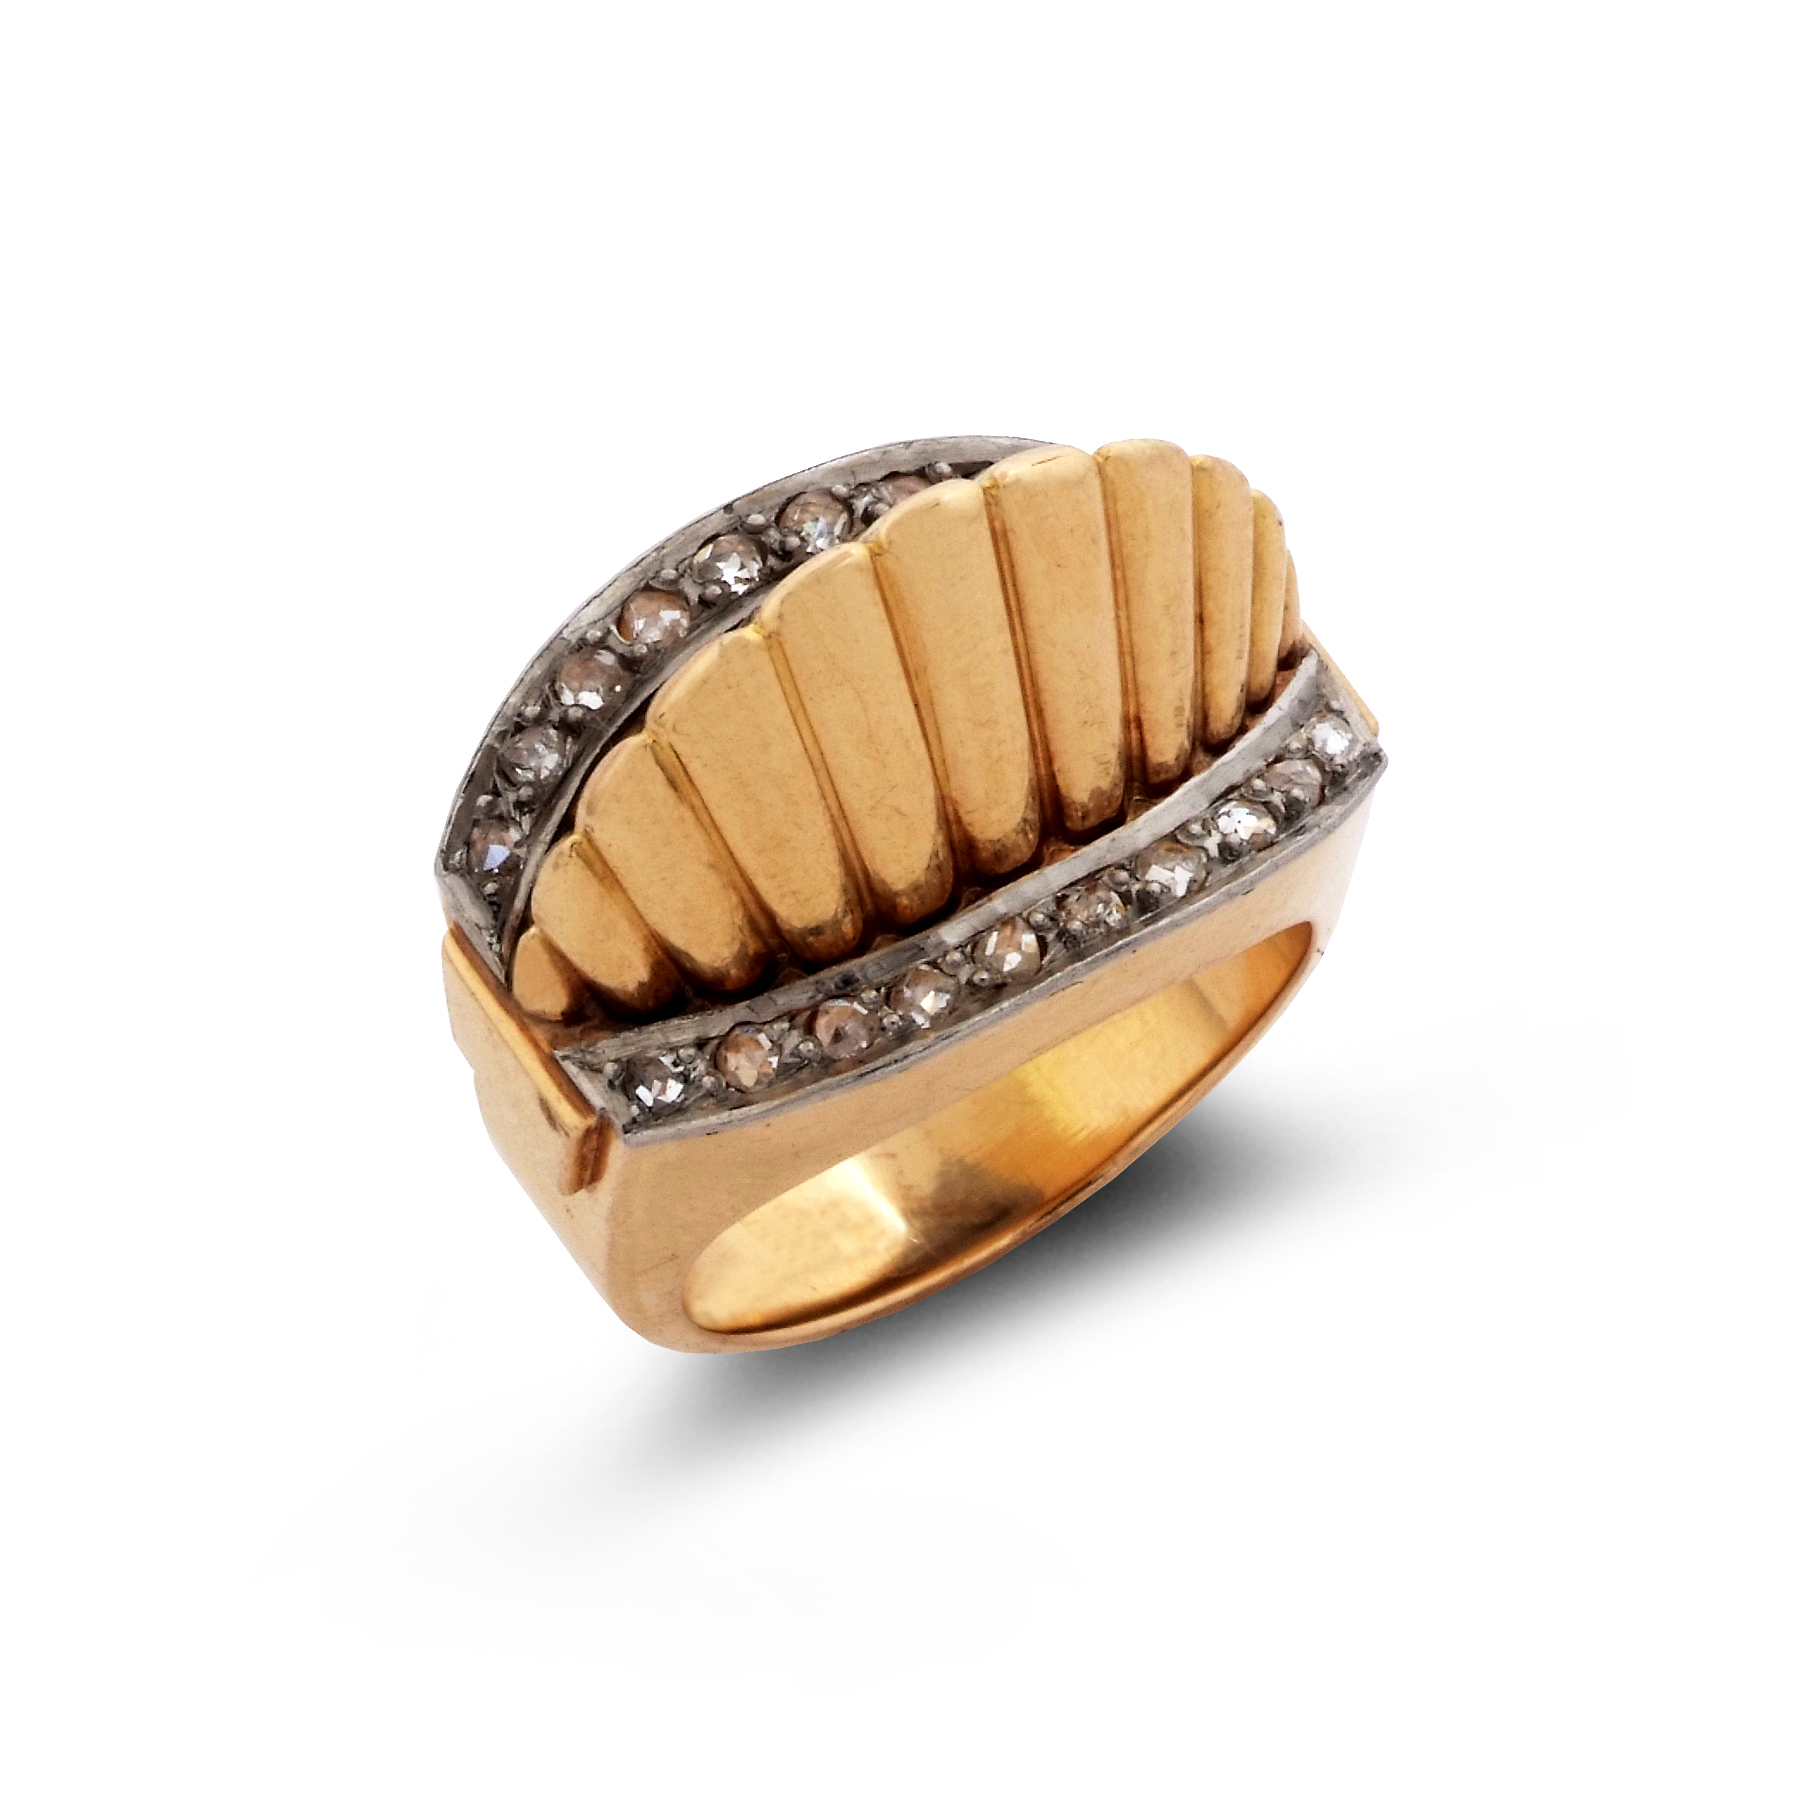 Antique-diamond-and-18ct-yellow-gold-40s-cocktail-ring-SN17.jpg